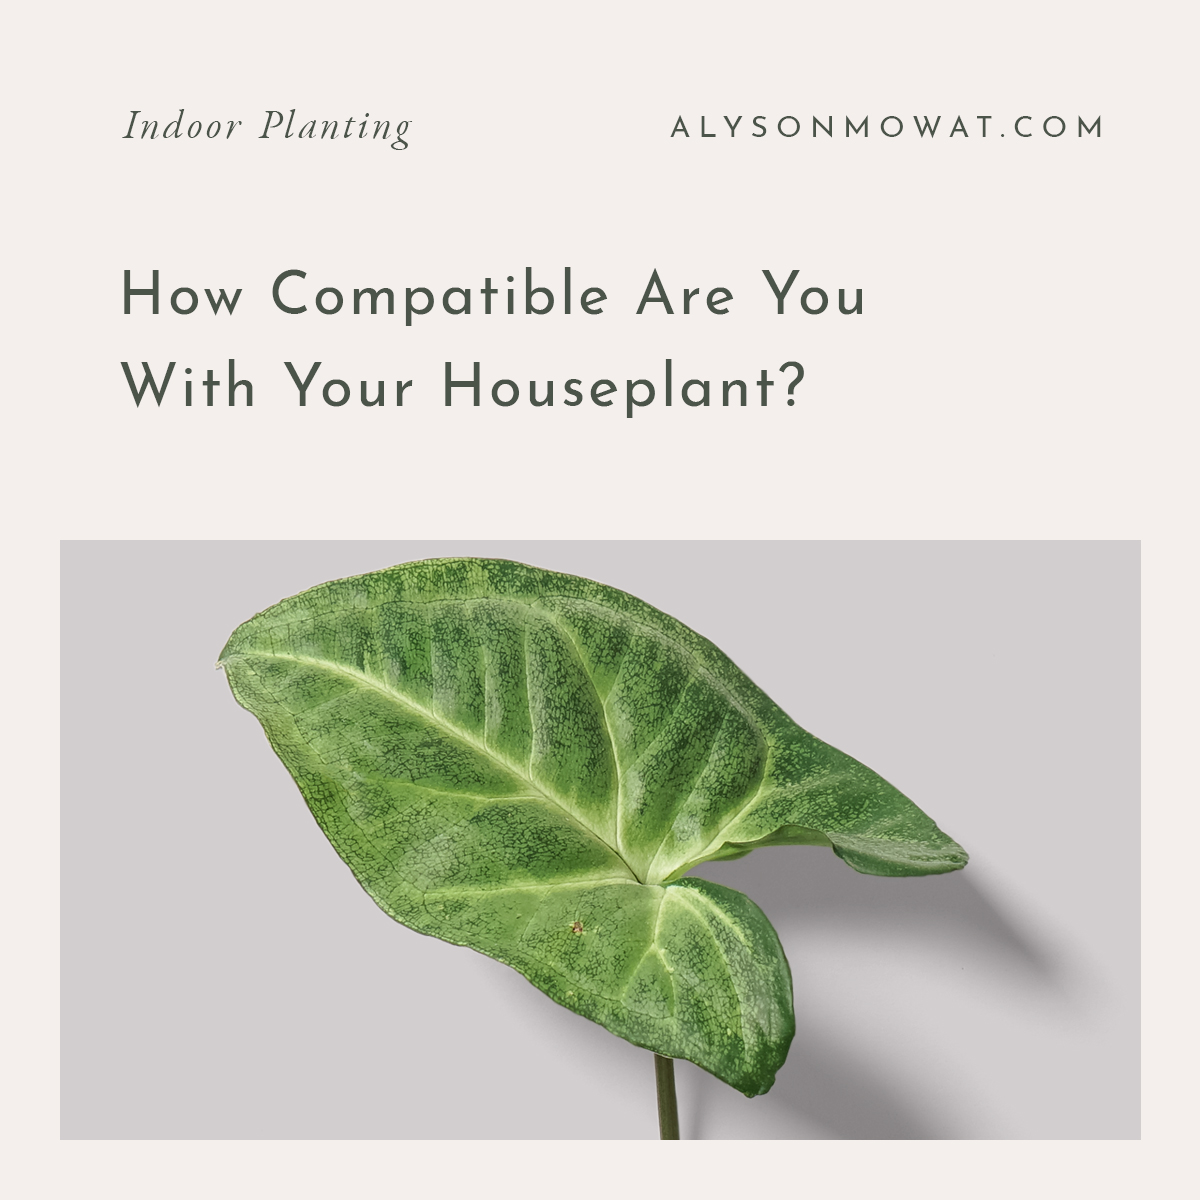 How-Compatible-Are-You-With-Your-Houseplant-.jpg